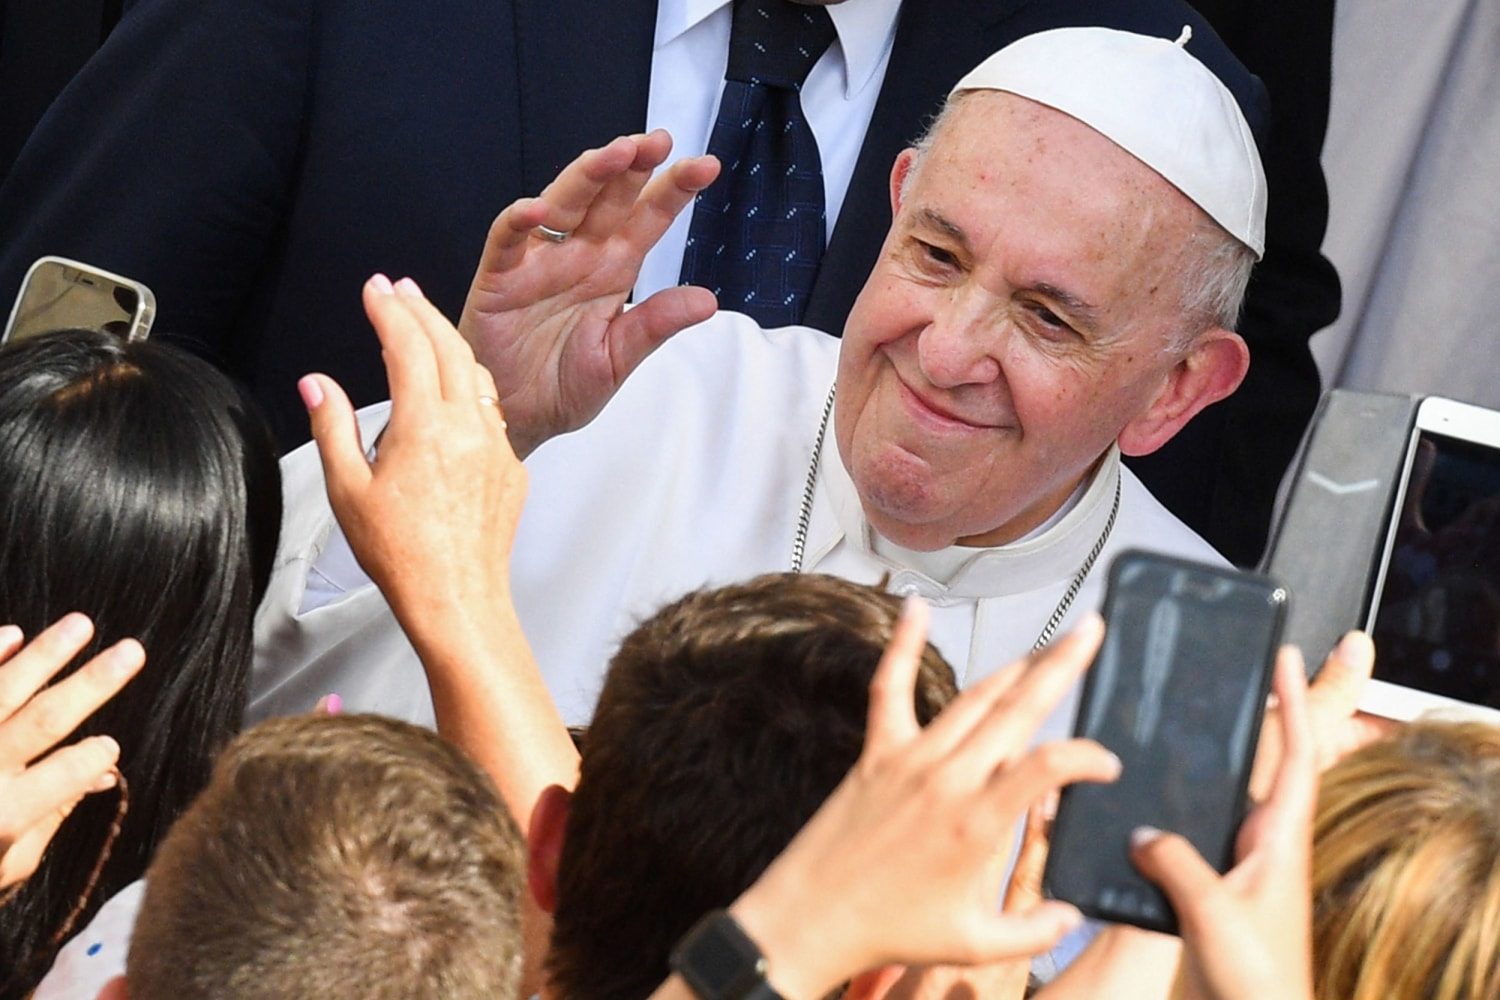 Vatican wants changes to Italy draft law against homophobia